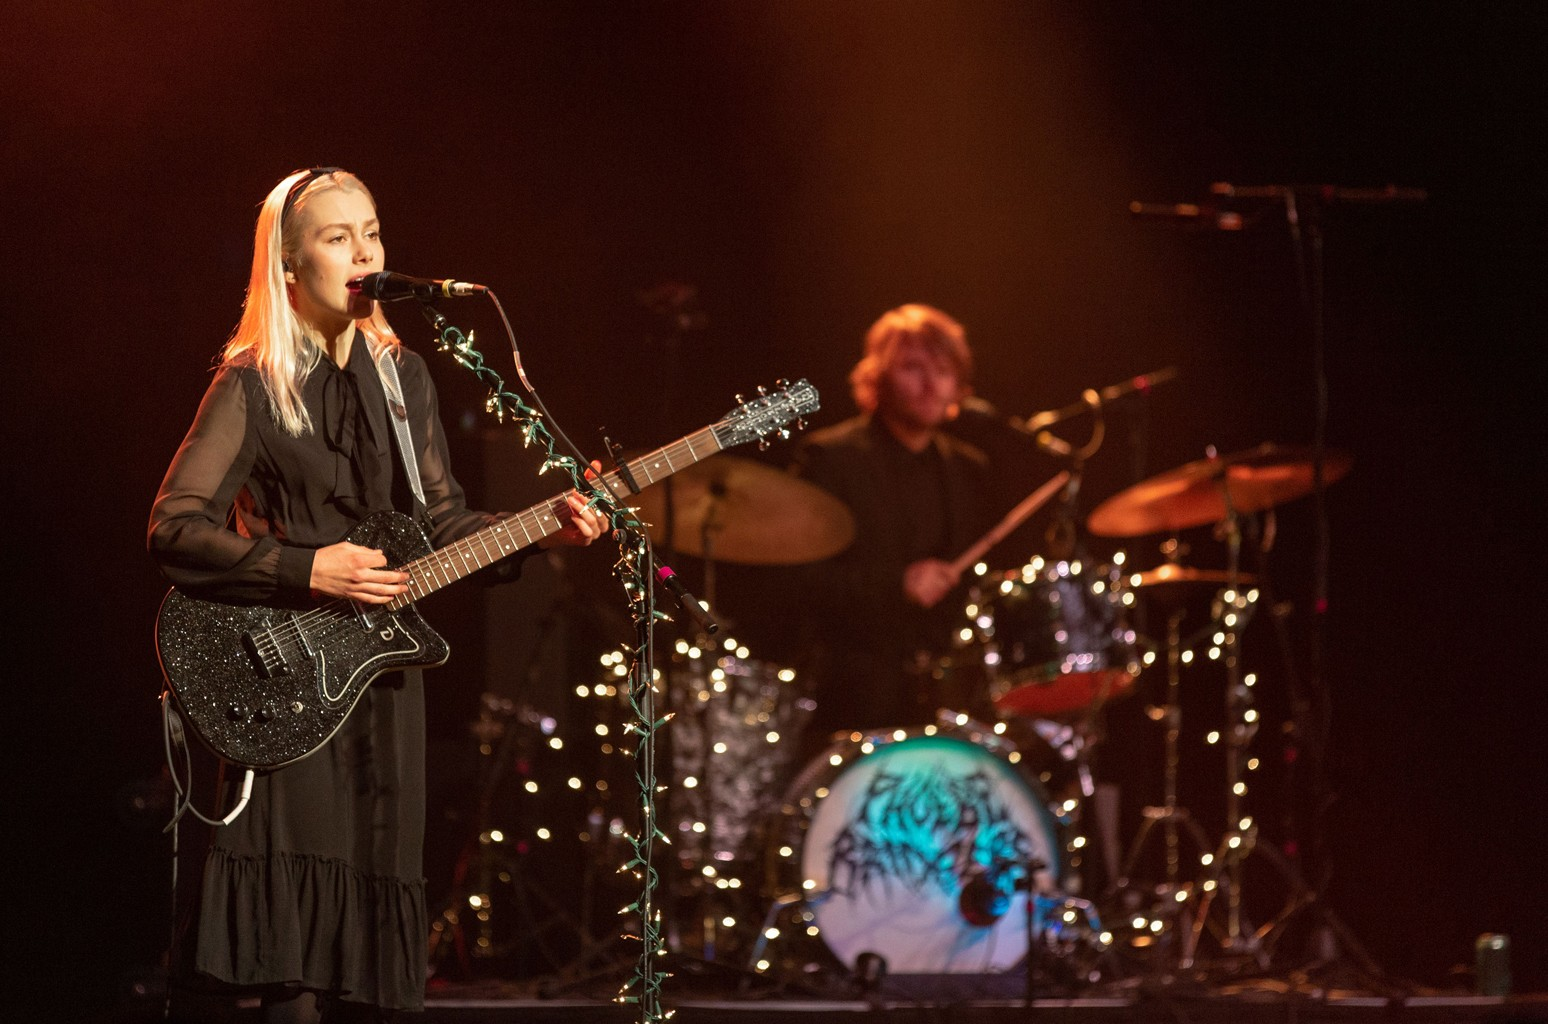 Phoebe Bridgers Set to Perform at 2021 A2IM Libera Awards: How to Watch